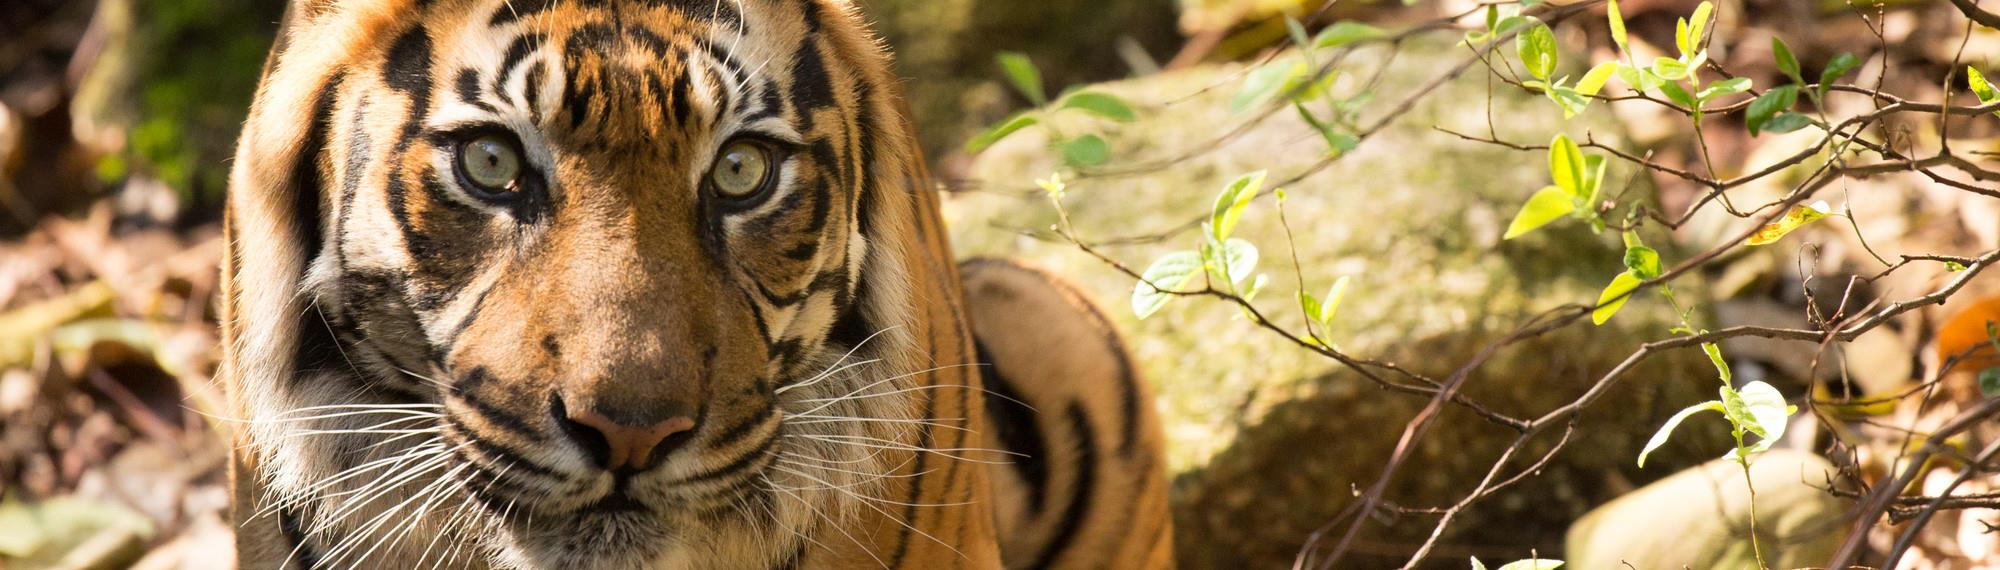 Sumatran Tiger sitting near a bush. Looks like he is ready to pounce while staring at the camera.